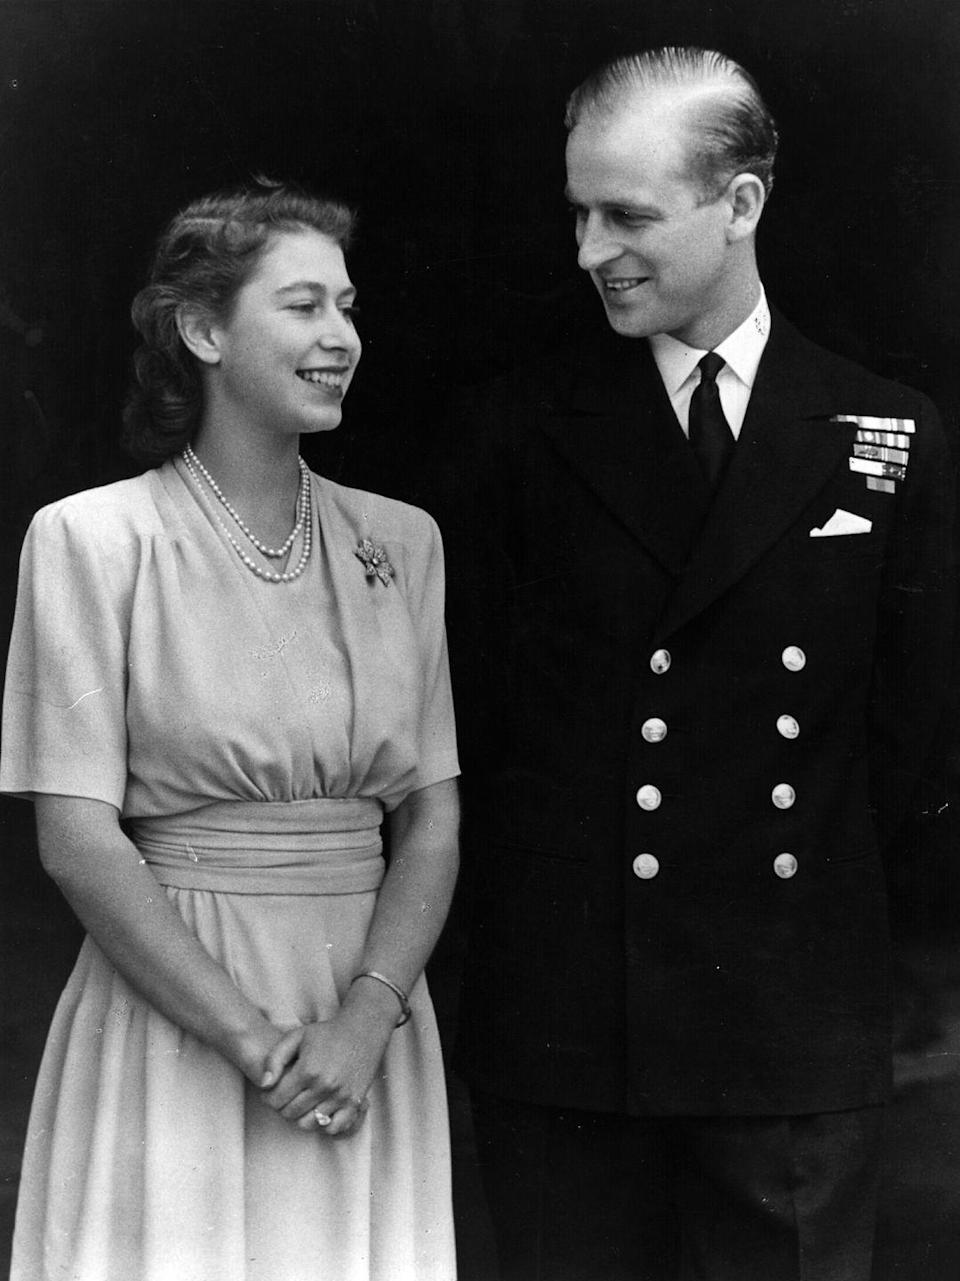 <p>In the summer, Philip asked King George VI for his daughter's hand in marriage. The king agreed informed Philip that he had to wait until Elizabeth's 21st birthday. In addition, Philip had to become a British subject by abandoning his Greek and Danish royal titles, taking on the surname Mountbatten from his mother's family, and adopting Anglicanism as a religion. His full British title became Duke of Edinburgh, Earl of Merioneth and Baron Greenwich.</p>